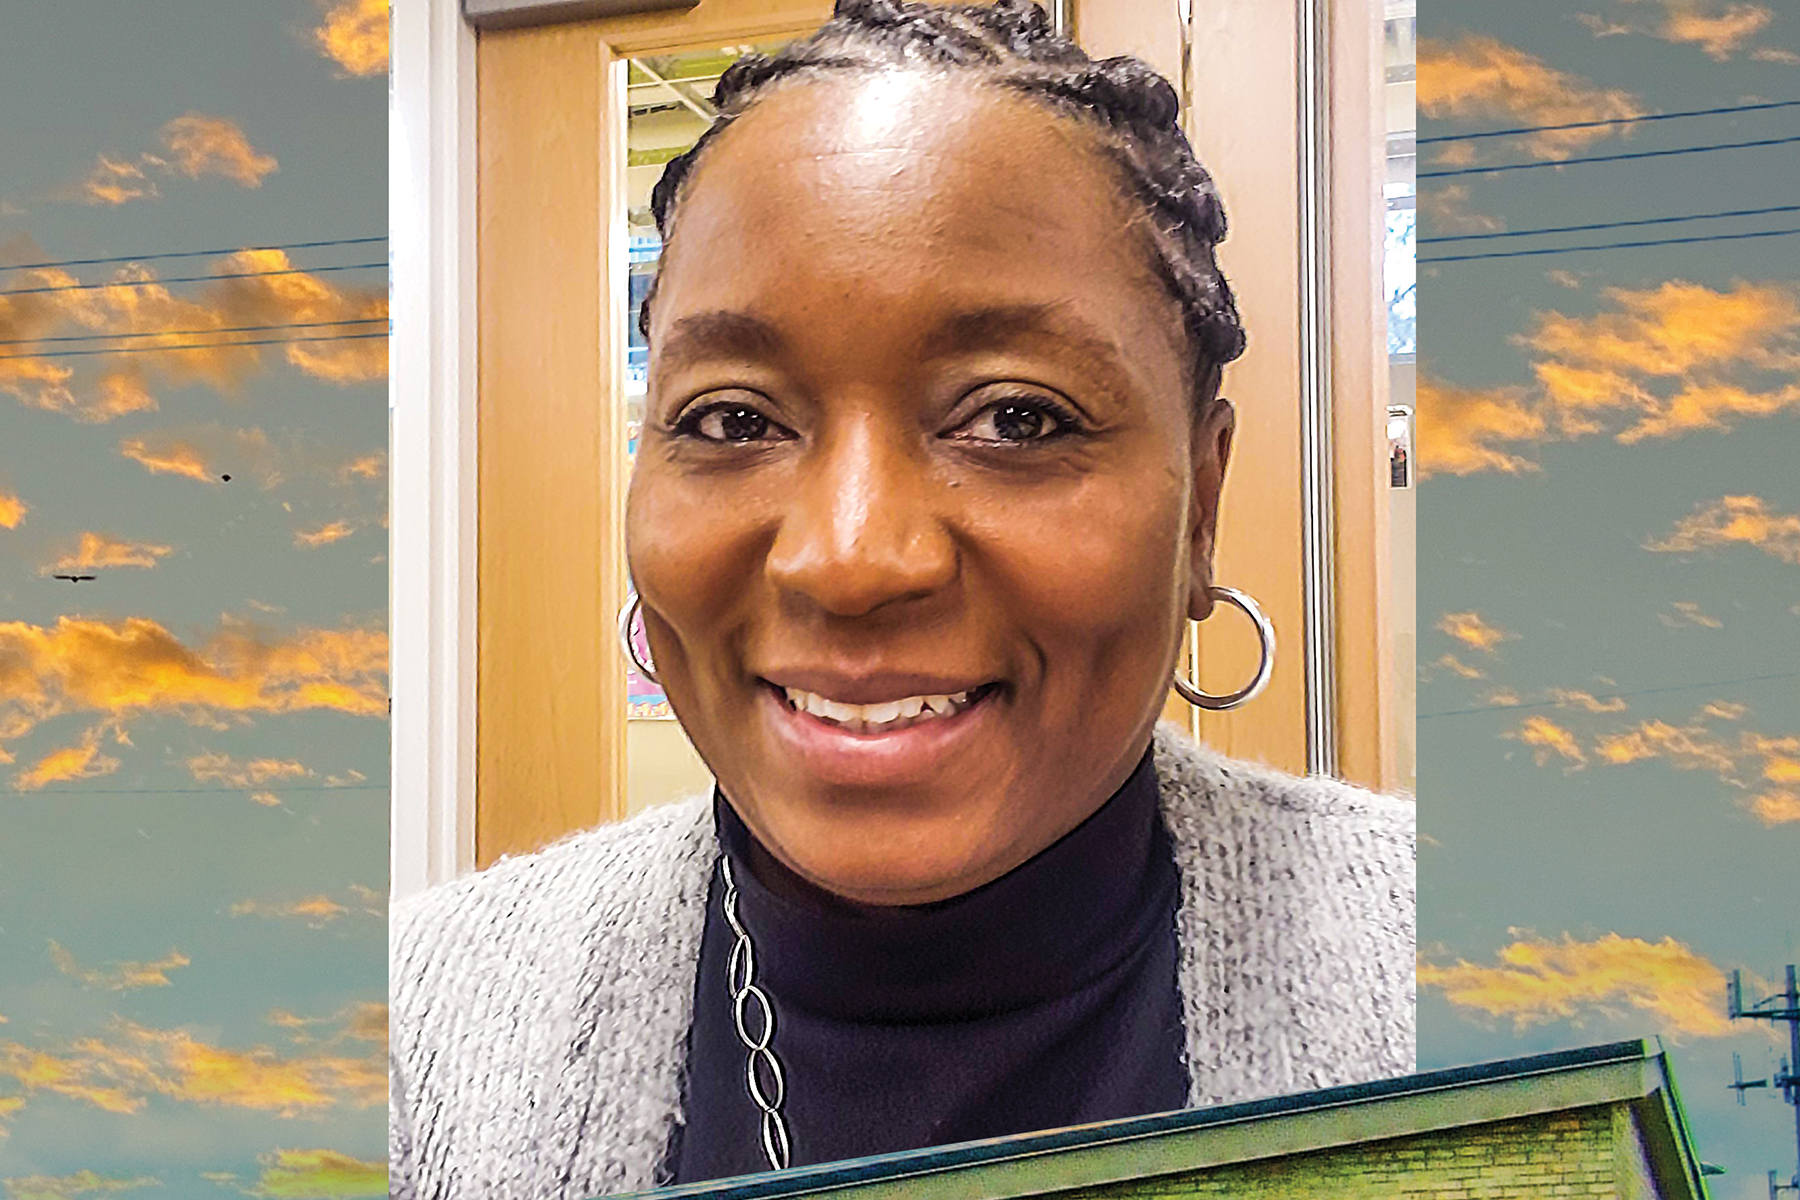 """Goodman Community Center CEO Letesha Nelson In the book, """"To Kill a Mockingbird"""", author Harper Lee writes: """"You never really know a man until you understand things from his point of view, until you climb into his skin and walk around in it."""" This quote is said to be a derivation of an old Cherokee proverb which states, """"Don't judge a man until you have walked a mile in his shoes."""""""